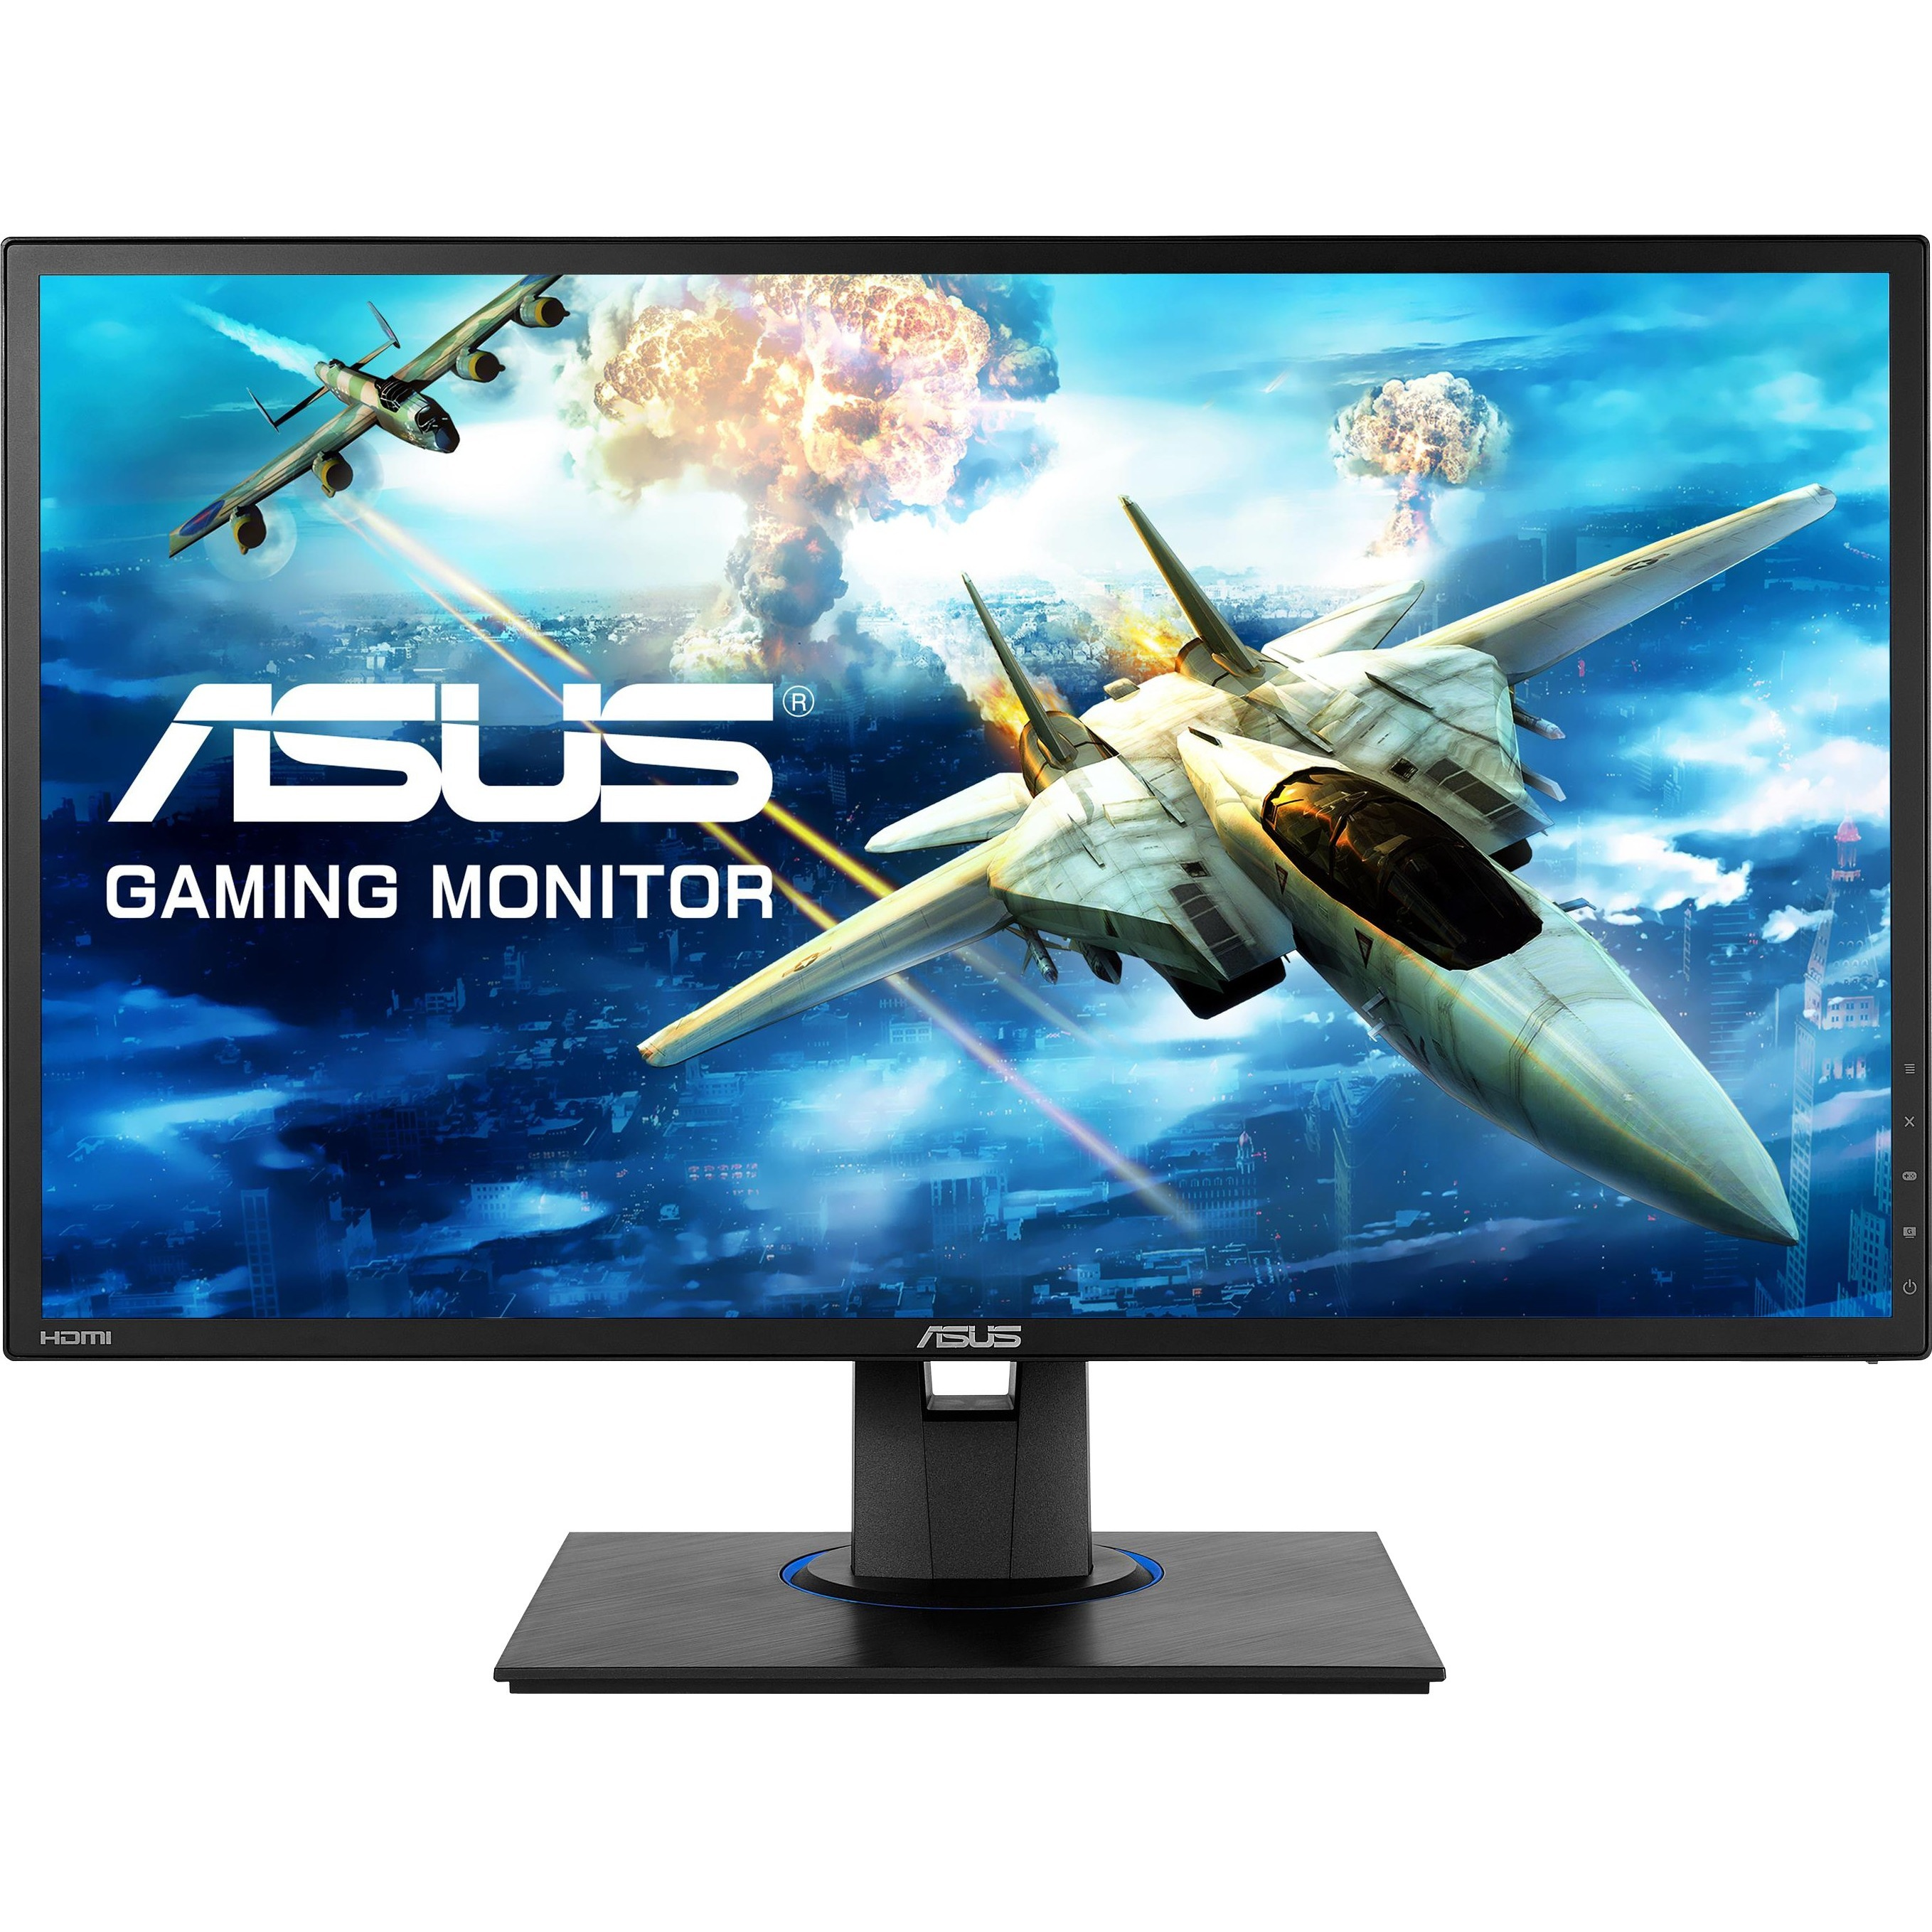 Asus VG245HE 24inch LED Monitor - 16:9 - 1 ms